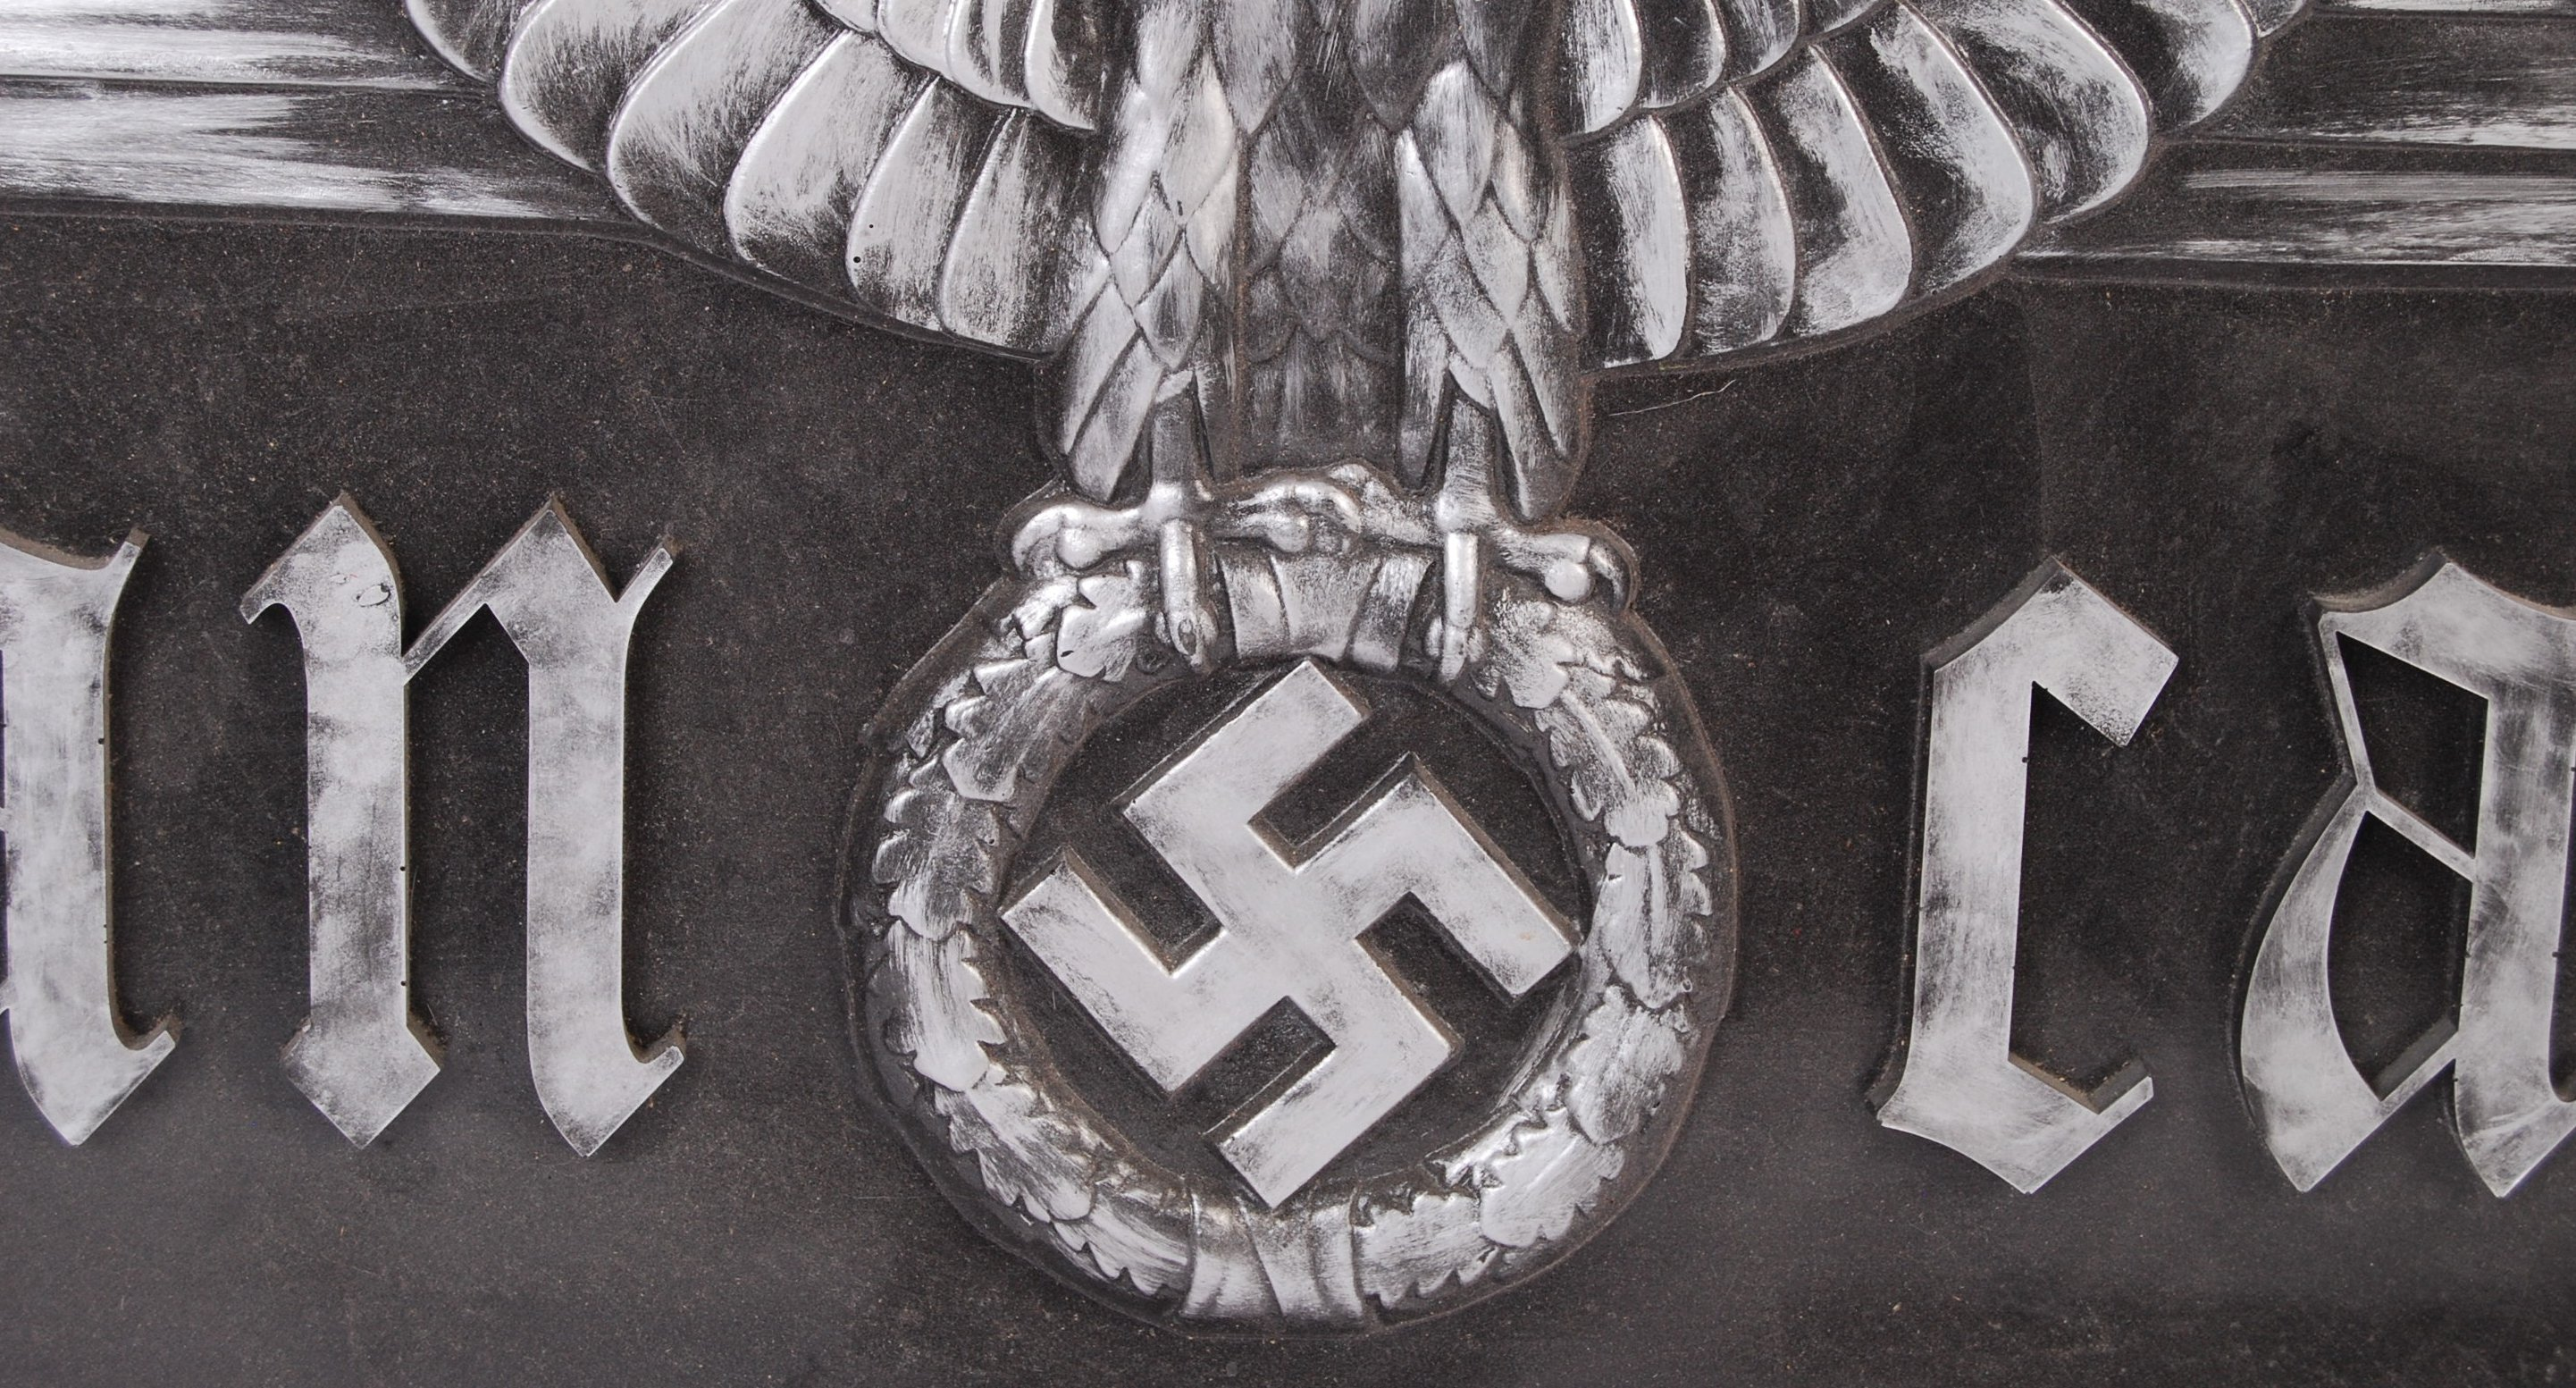 WWII SECOND WORLD WAR NAZI THIRD REICH INSPIRED WALL PLAQUE - Image 2 of 3